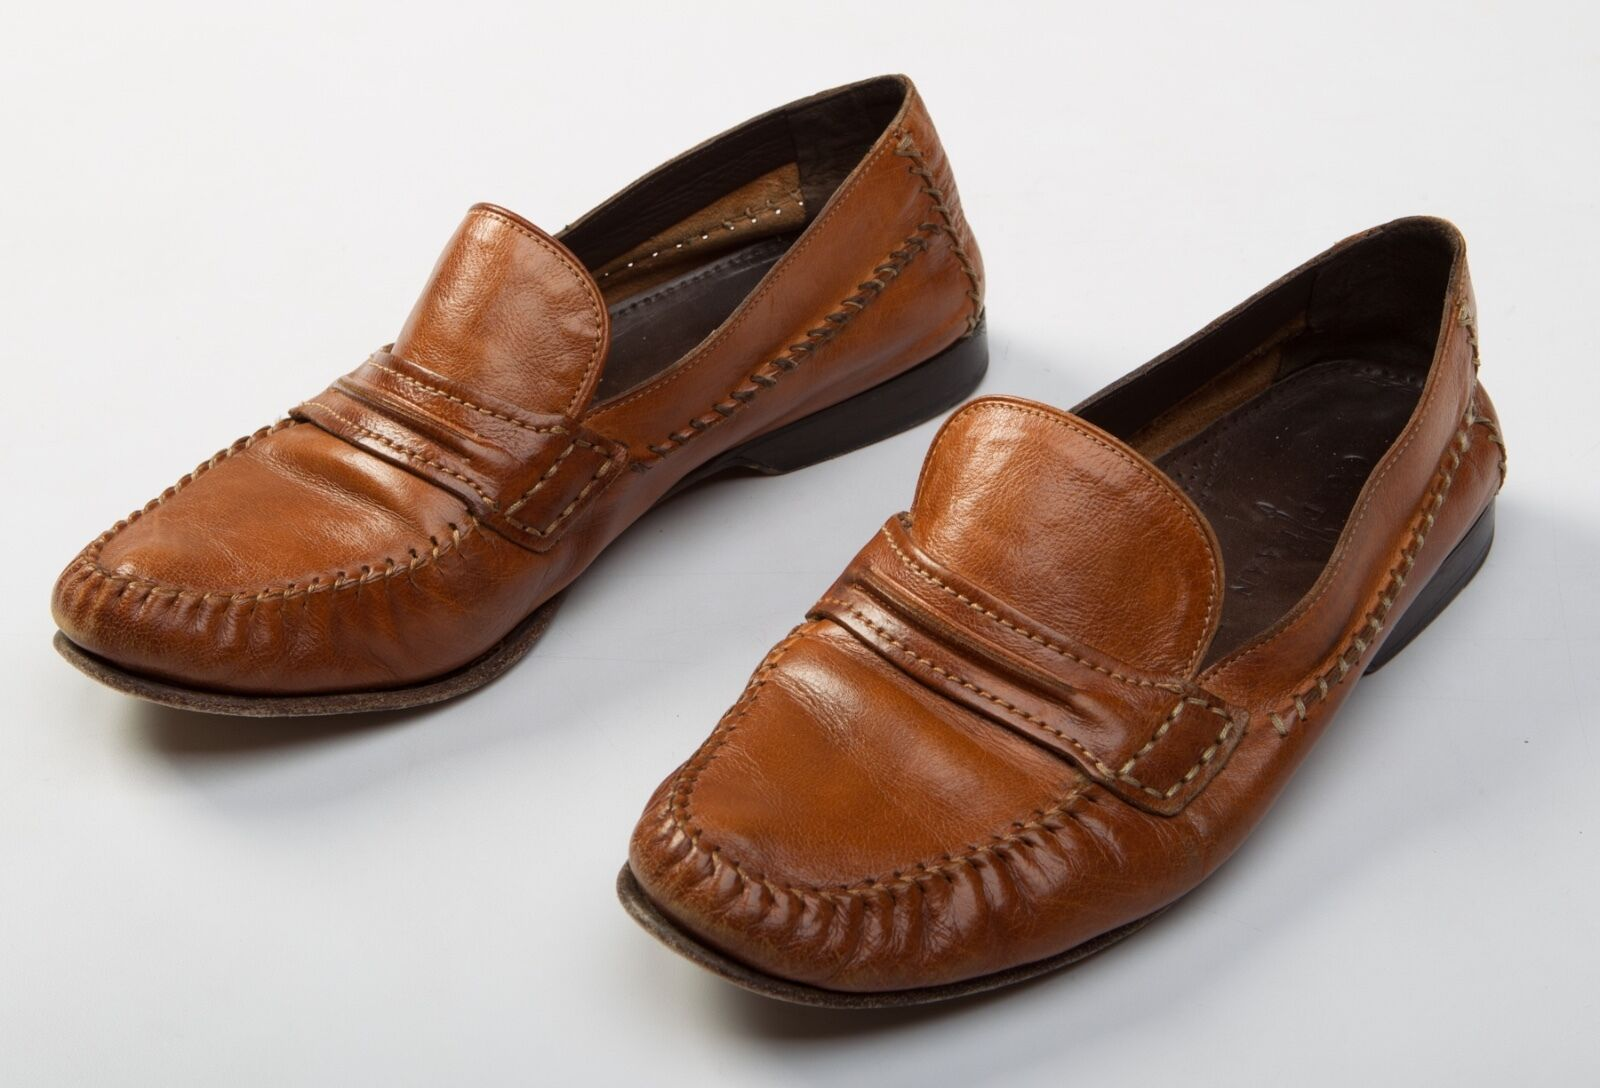 Men's Cole Haan Brown Leather Loafers Formal shoes Size Sz US 8.5 M